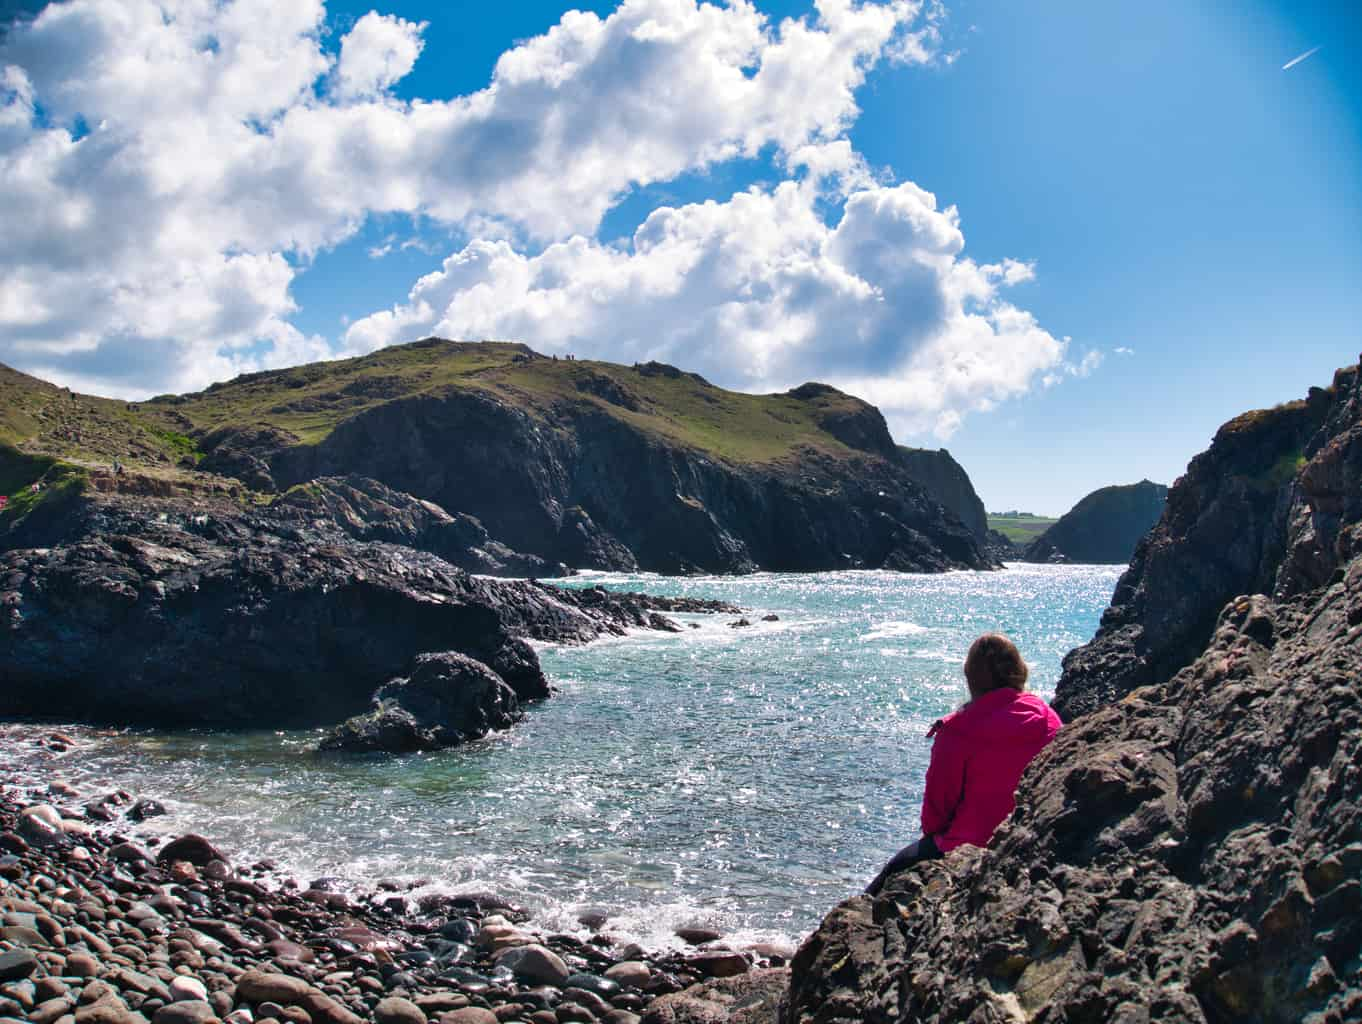 Kalyn sitting on a rock looking out over the blue water at Kynance Cove